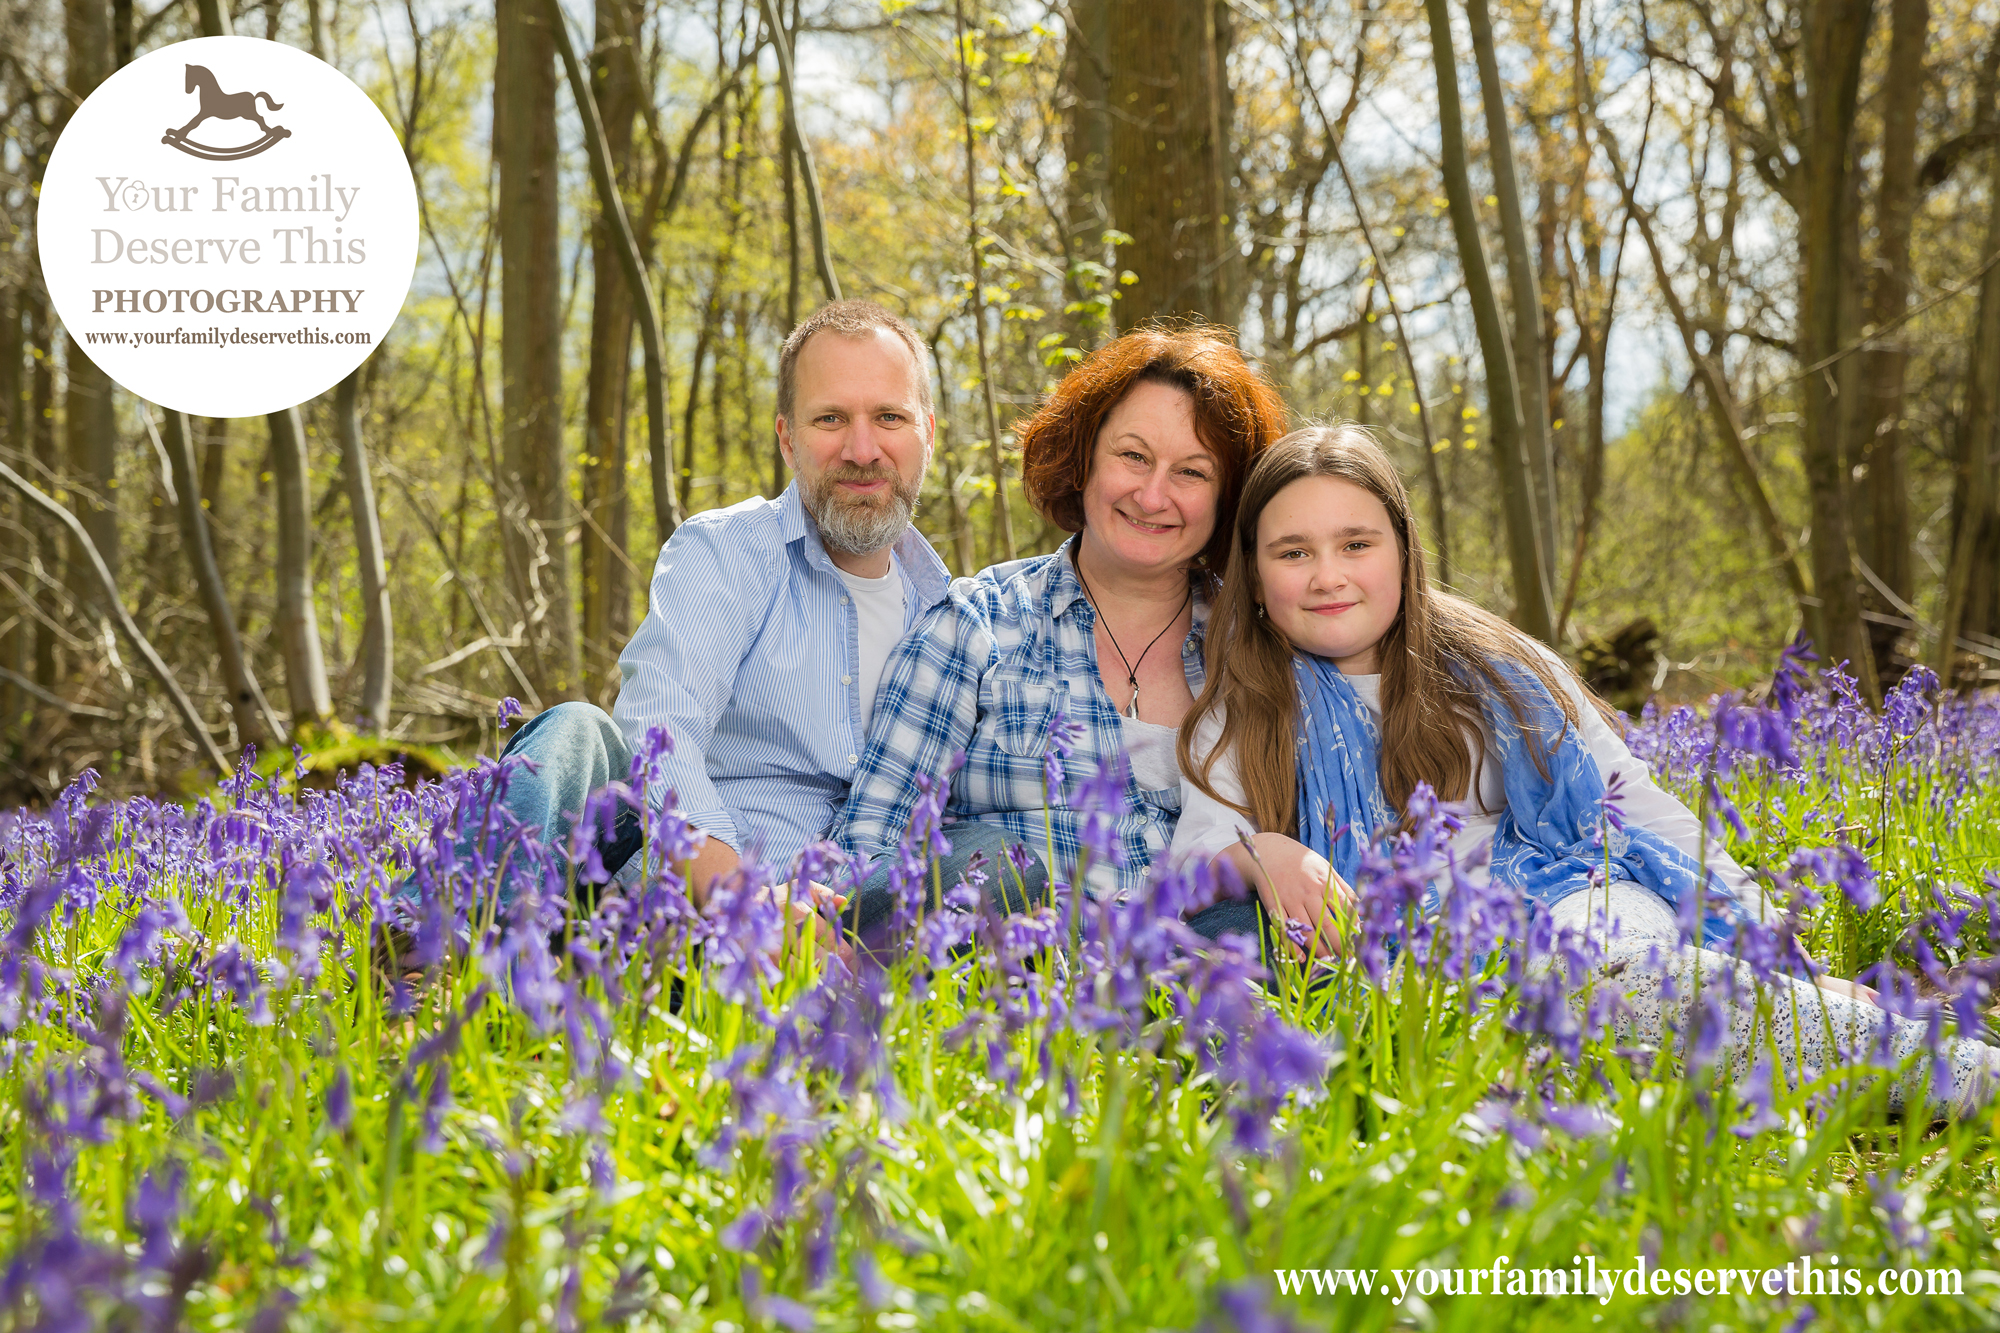 We LOVE Outdoor Family Photoshoots | Your Family Deserve